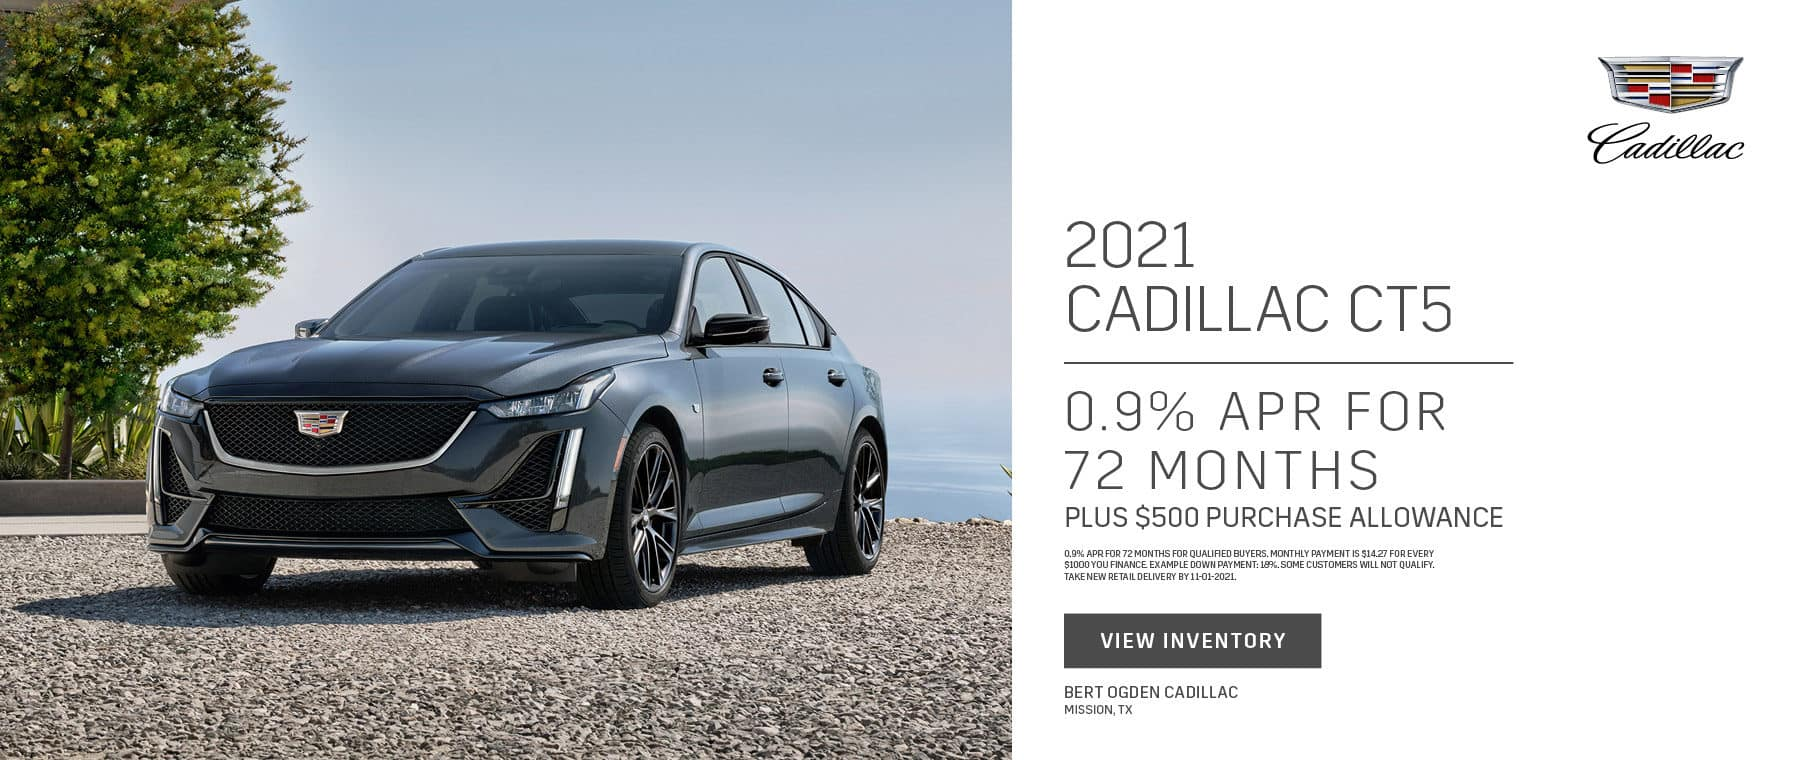 2021 Cadillac CT5 Offer   Bert Ogden Cadillac in Mission, Texas